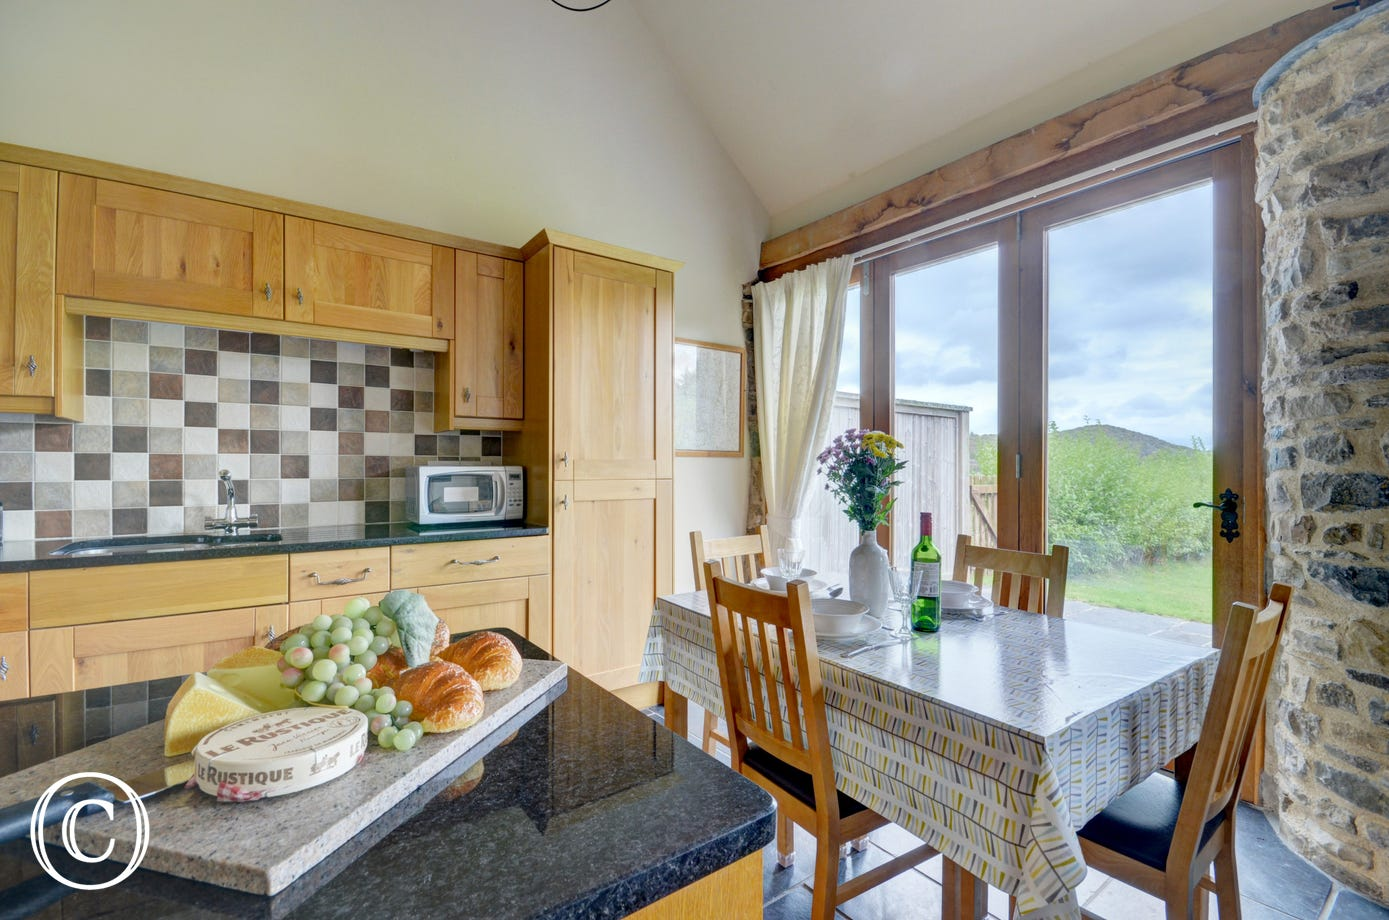 The well equipped kitchen and dining area with wonderful views